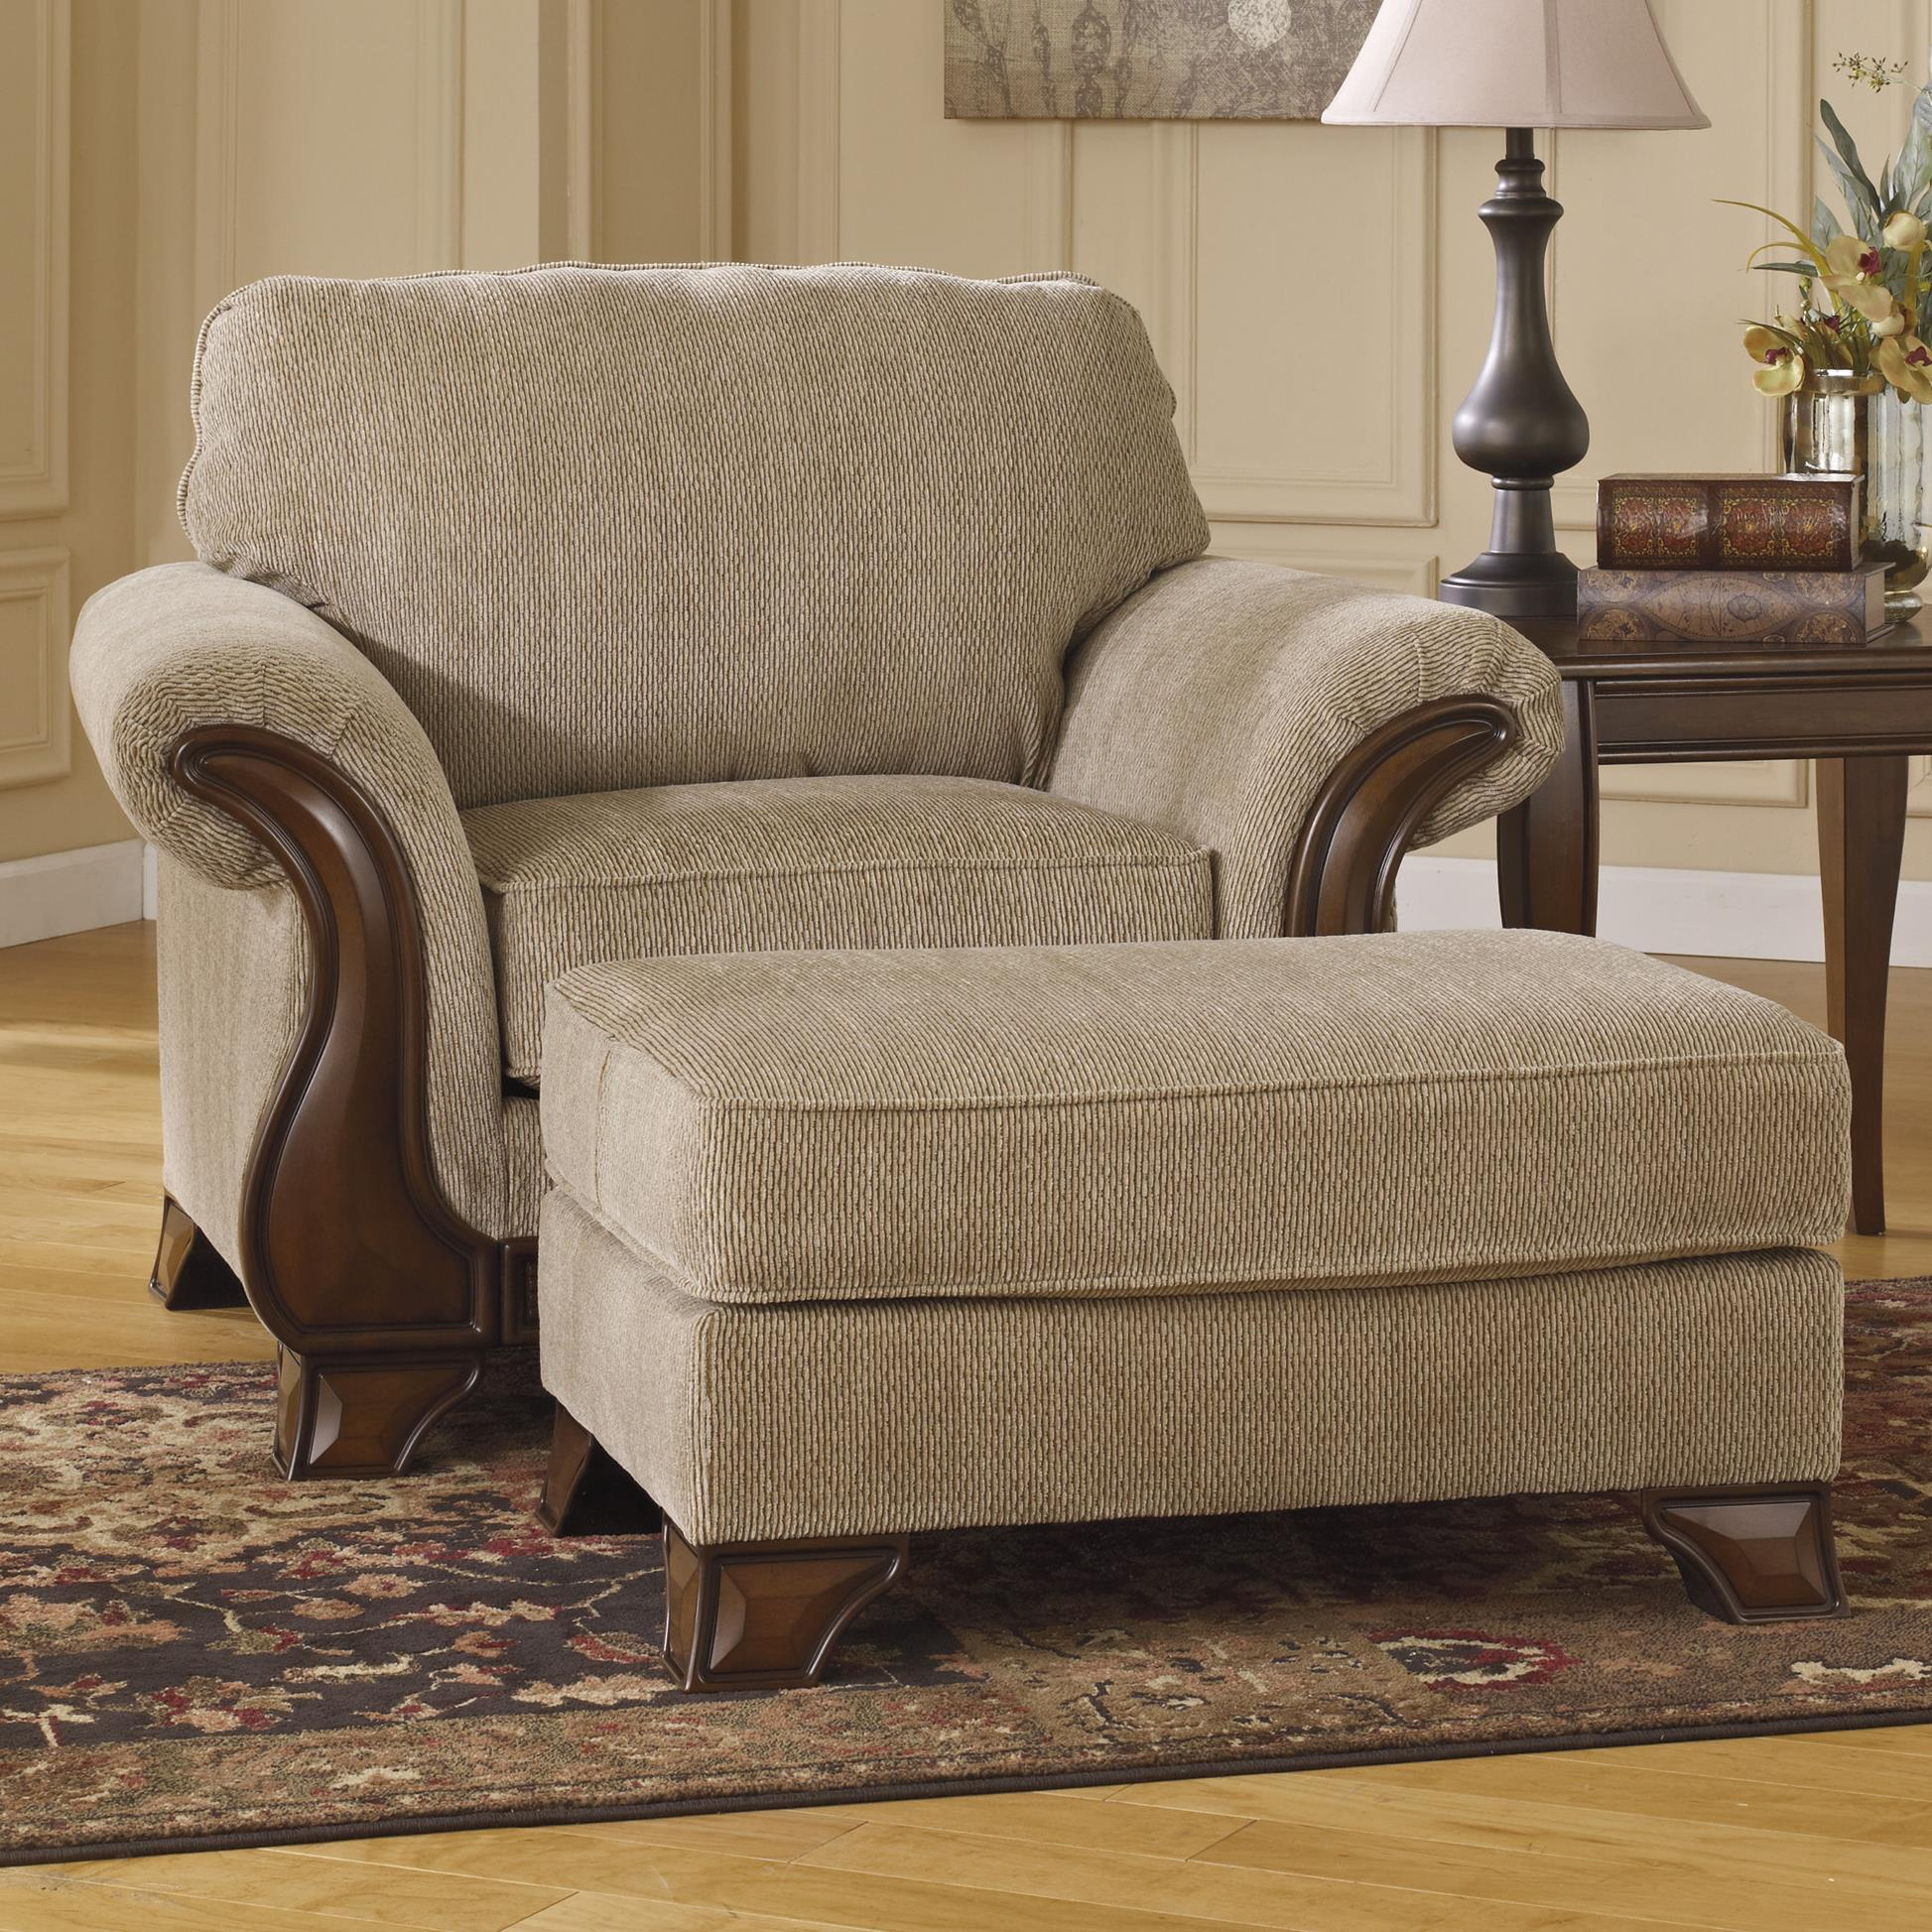 Lanett Chair & Ottoman by Signature at Walker's Furniture